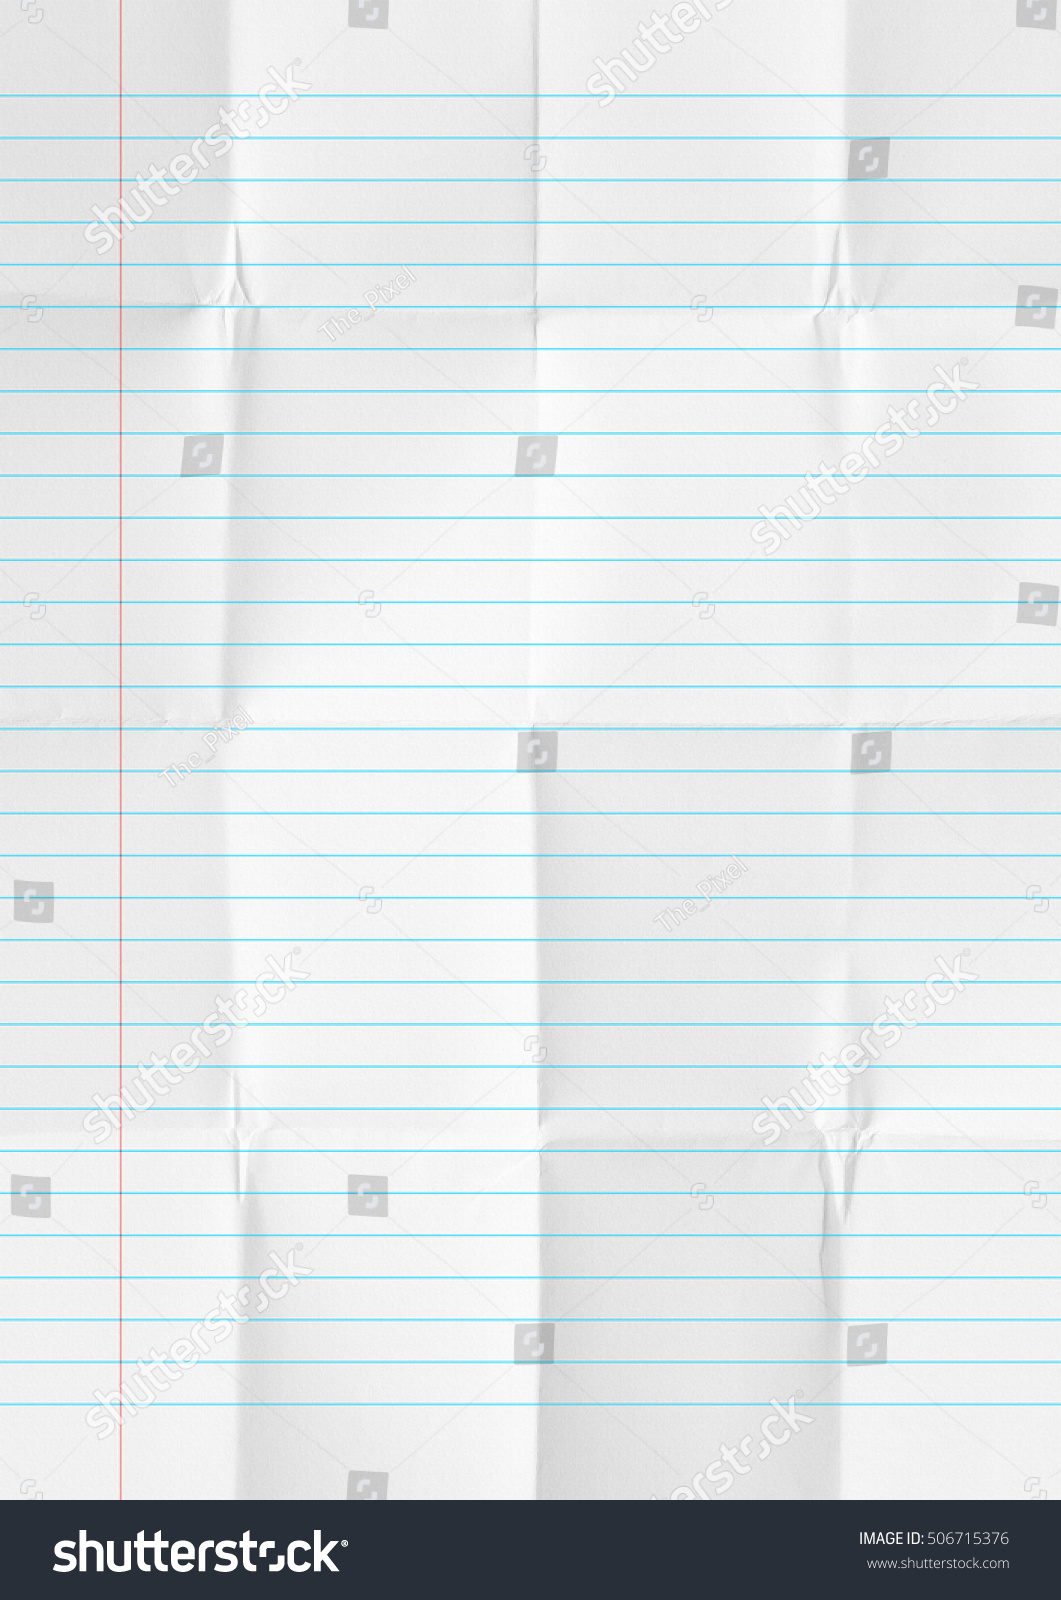 White Crumpled Lines Paper School Background  Lines Paper